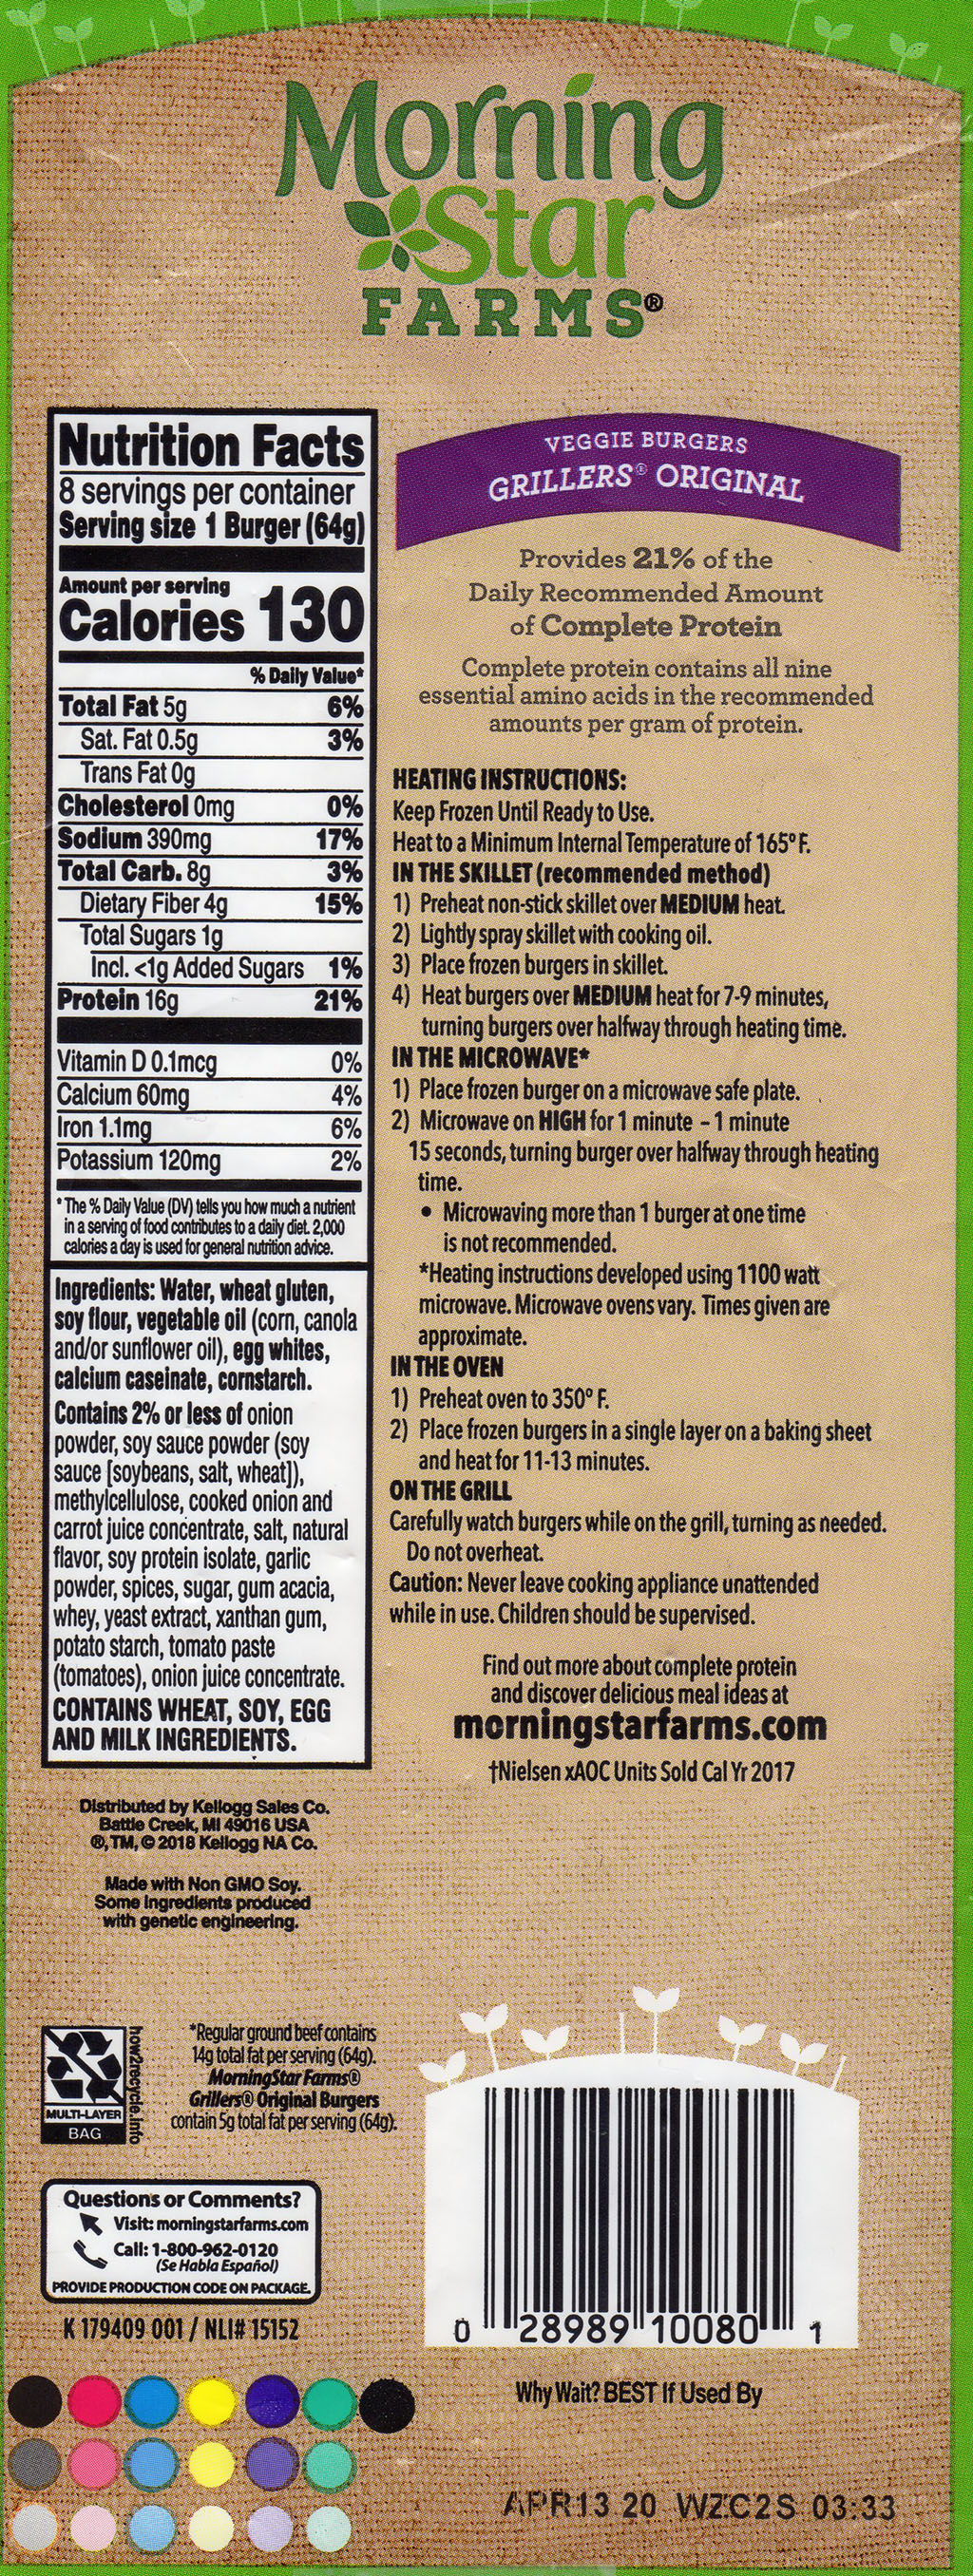 MorningStar Farms Grillers Original 2019 nutrition, ingredients